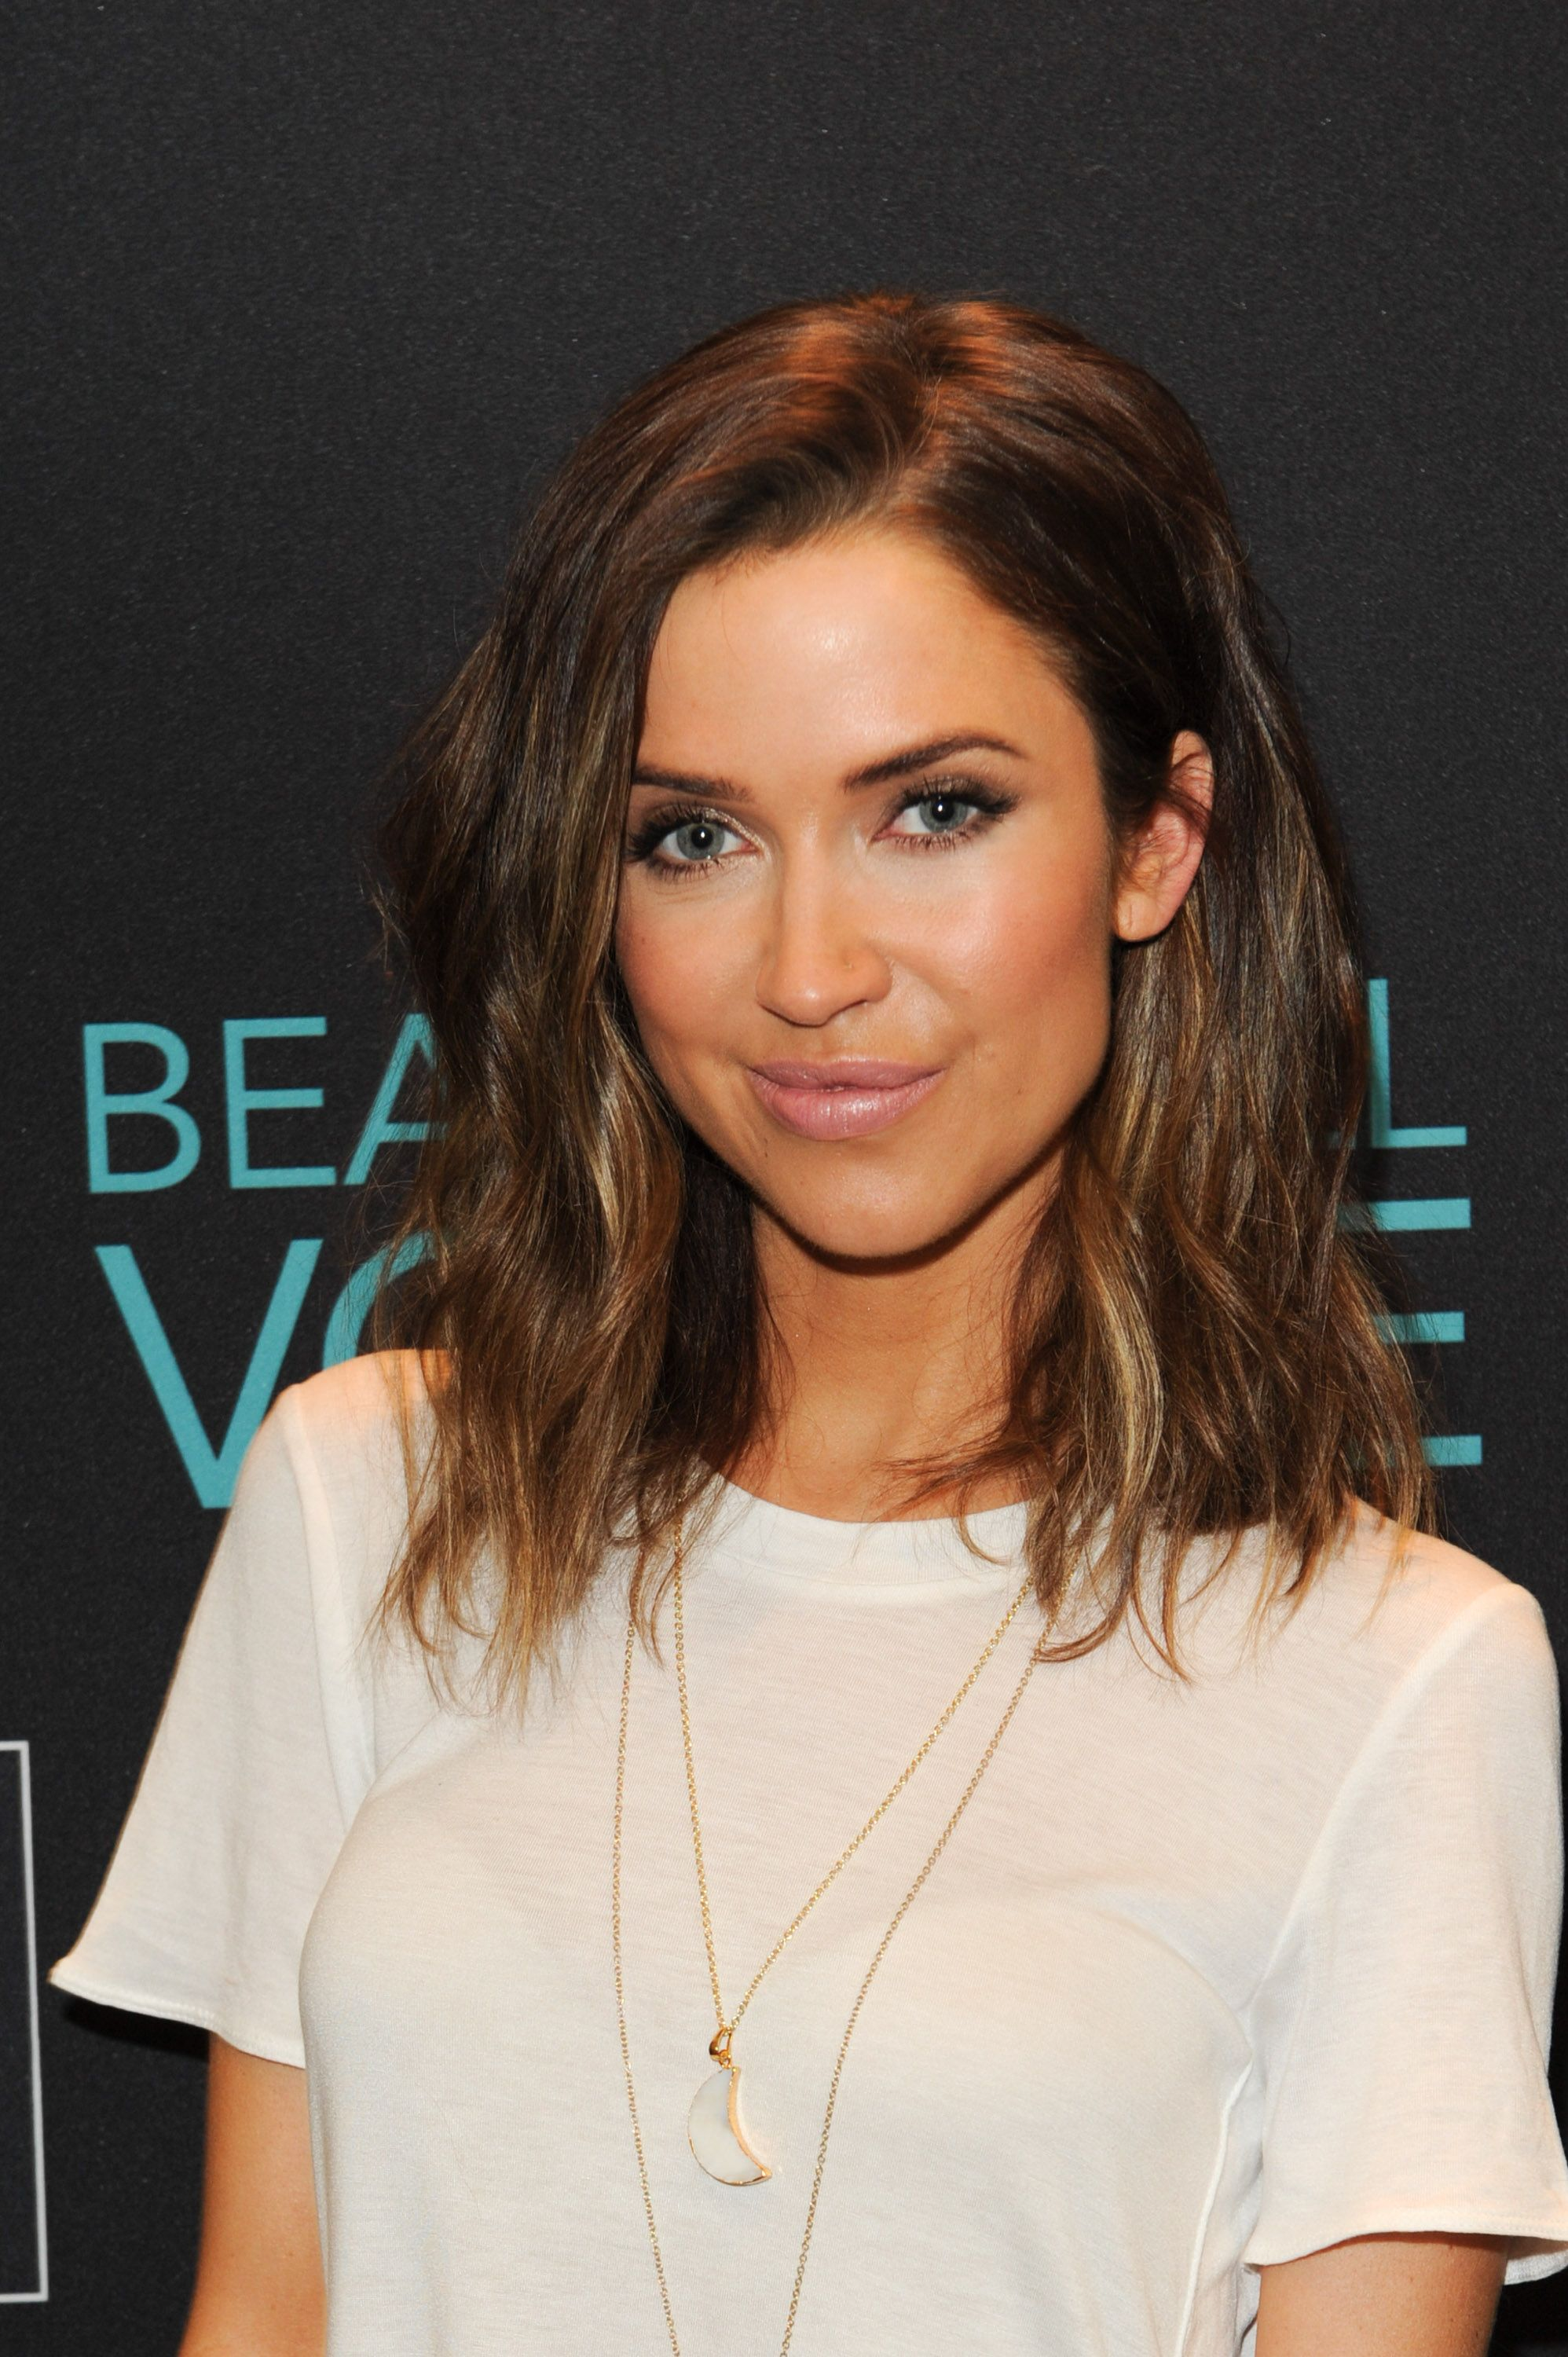 f24393005f Kaitlyn Bristowe Emotionally Responds to Haters After Botox ...